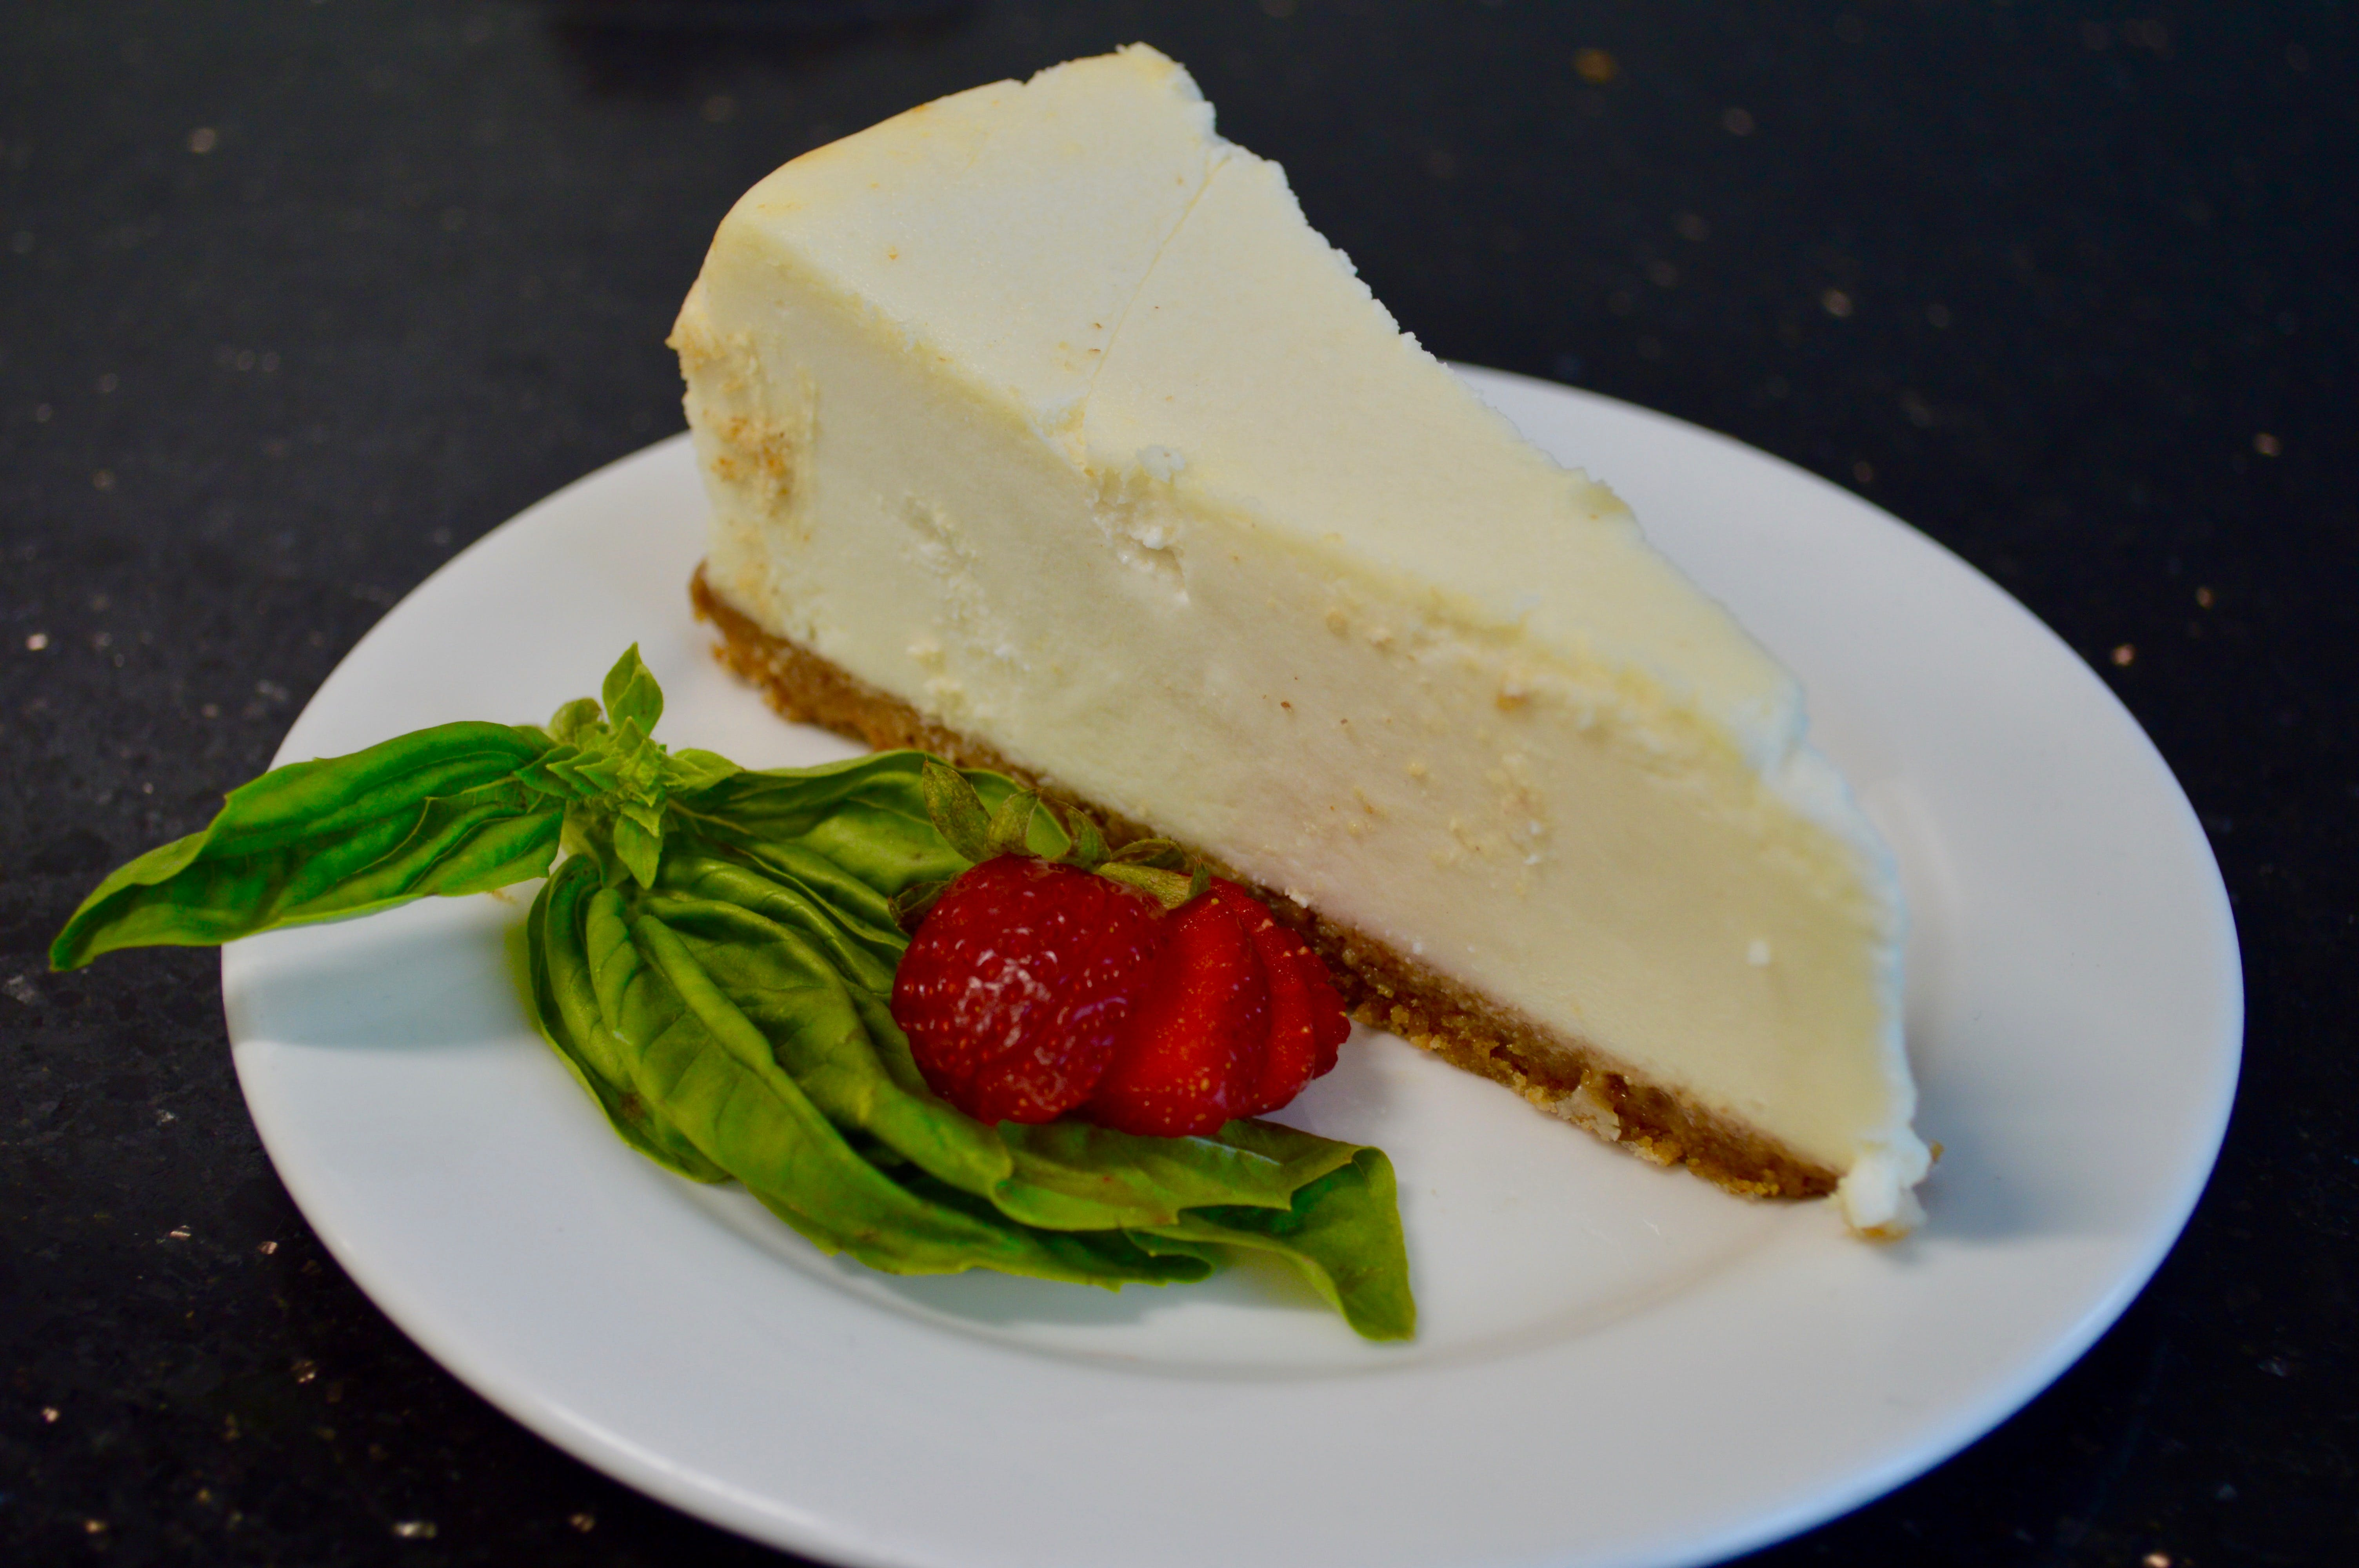 Cheesecake from Ameci Pizza & Pasta - Lake Forest in Lake Forest, CA